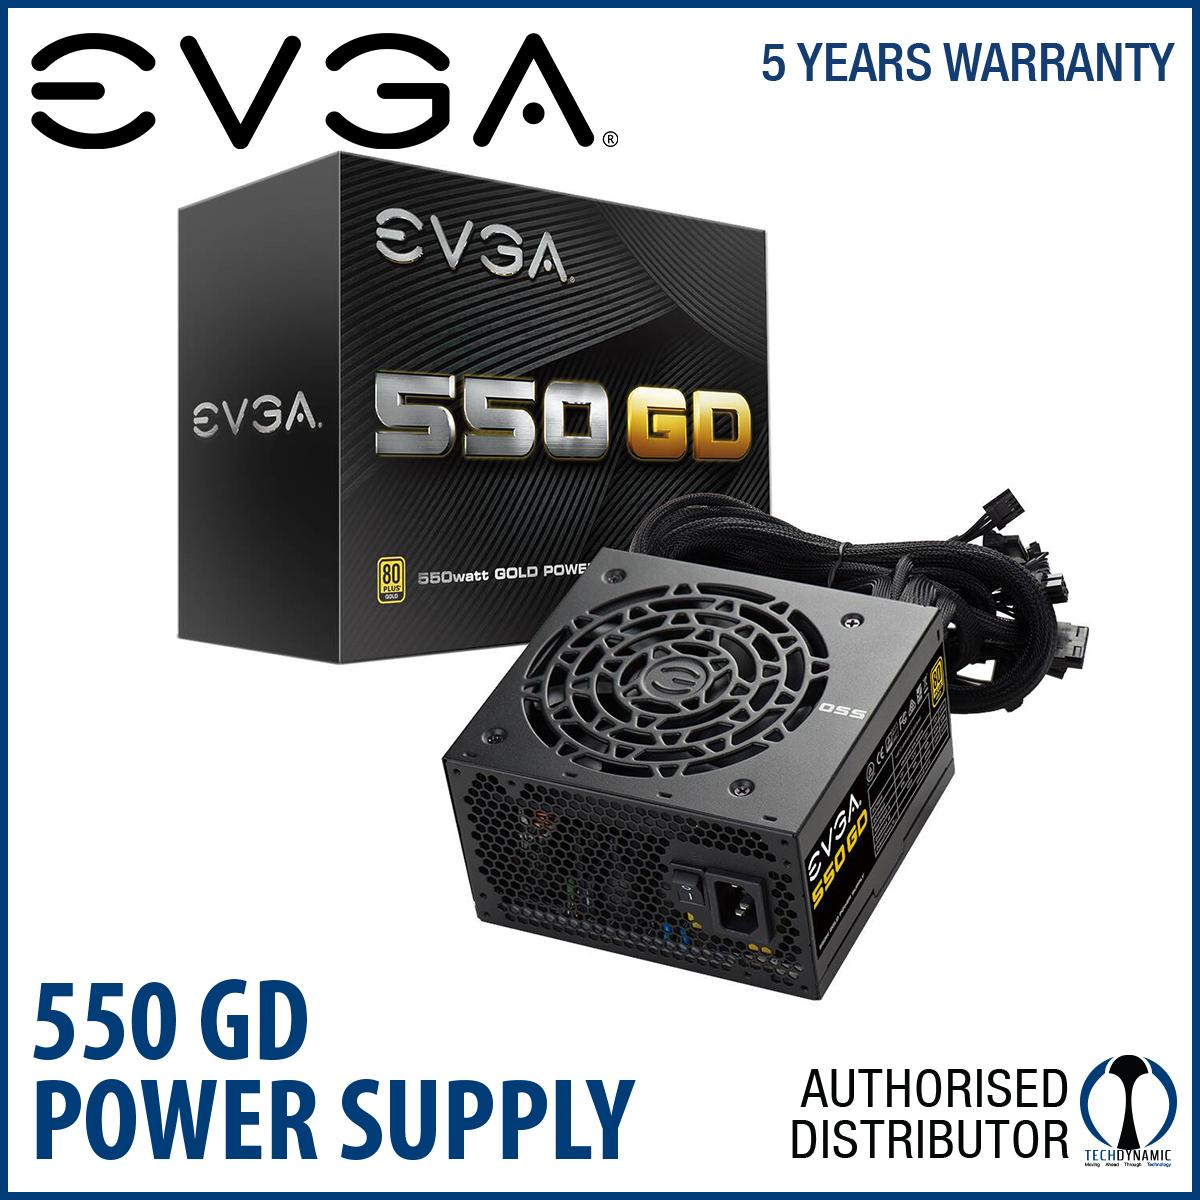 Top Rated Evga 550 Gd Power Supply